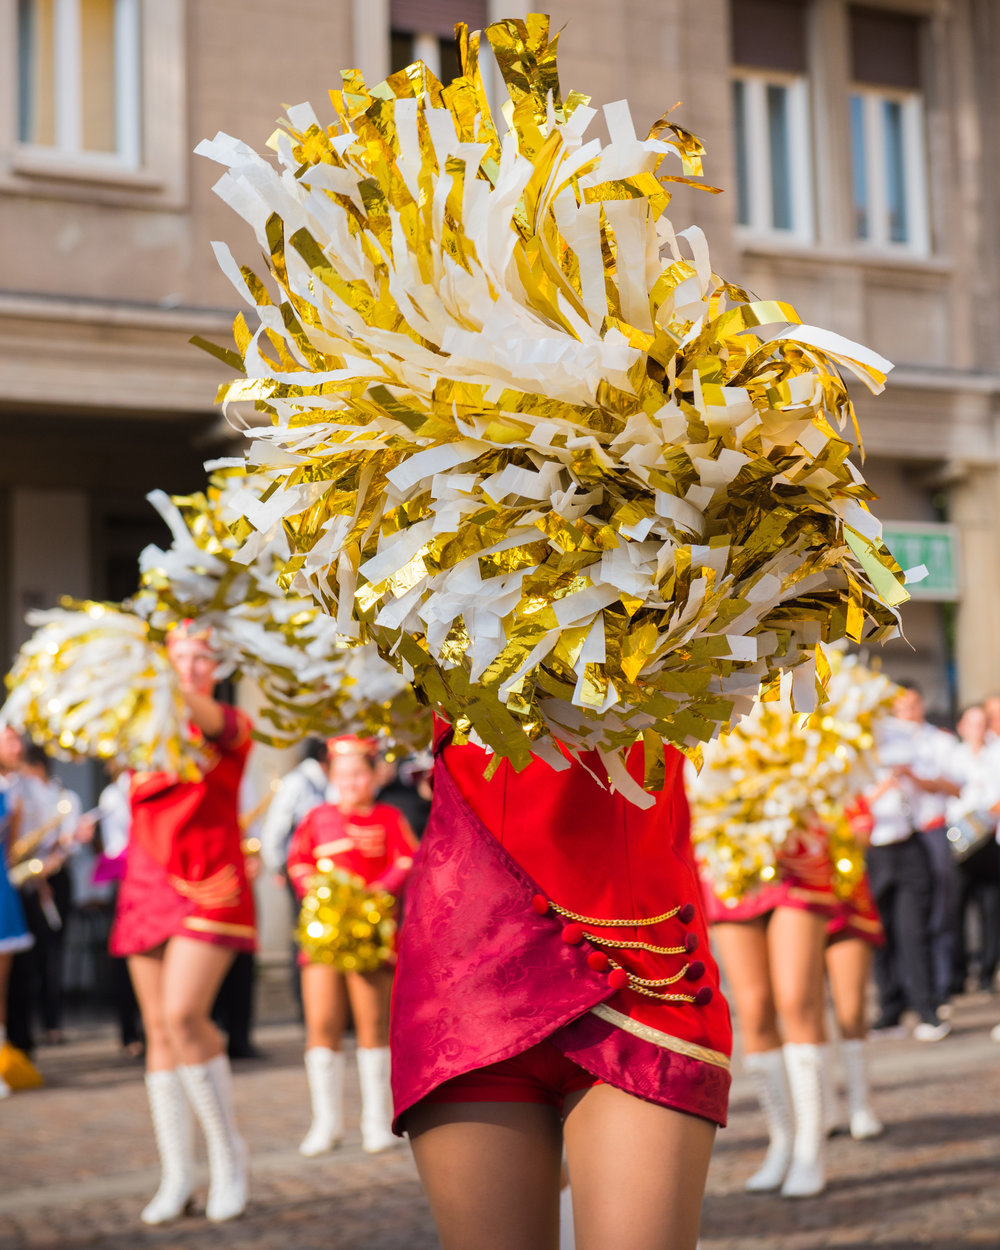 A young majorette performing with pom-poms during a festival of marching bands.